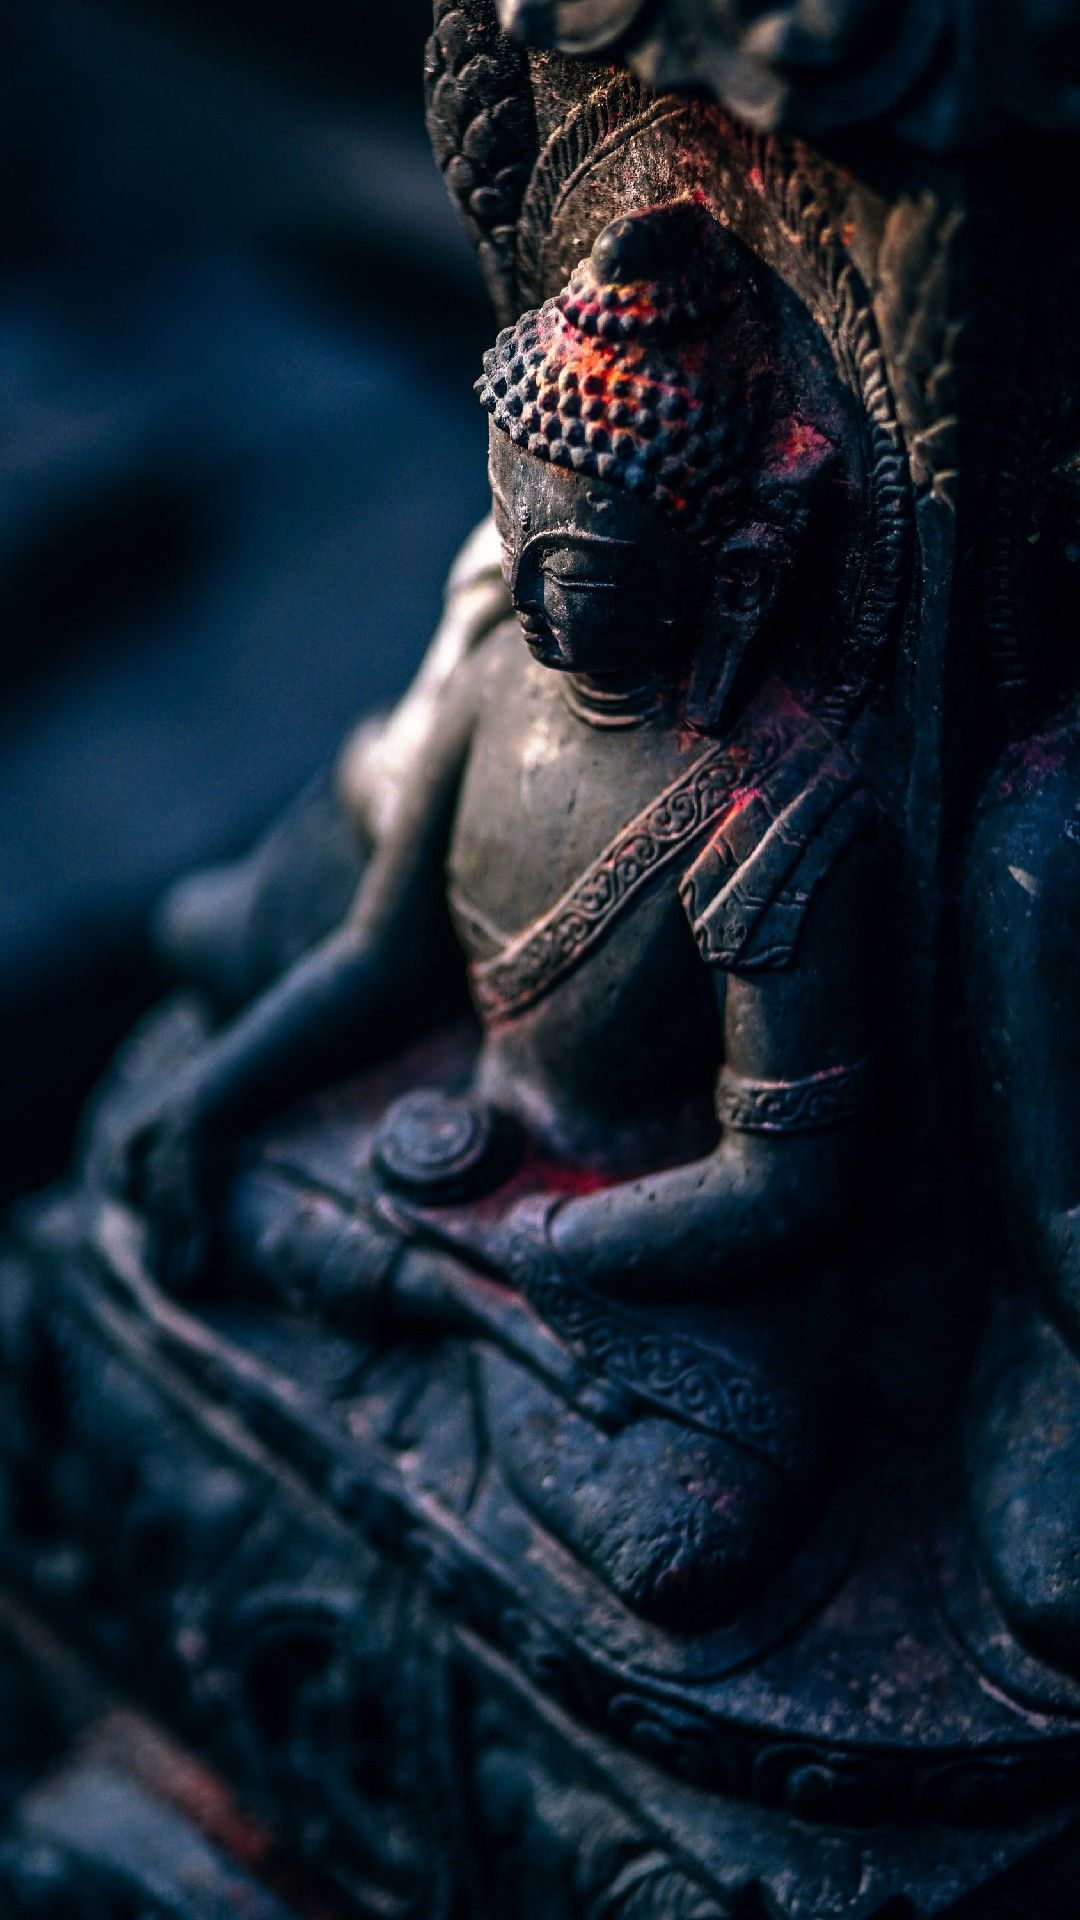 Pin by ZenZone on iPhone Wallpapers Buddha sculpture